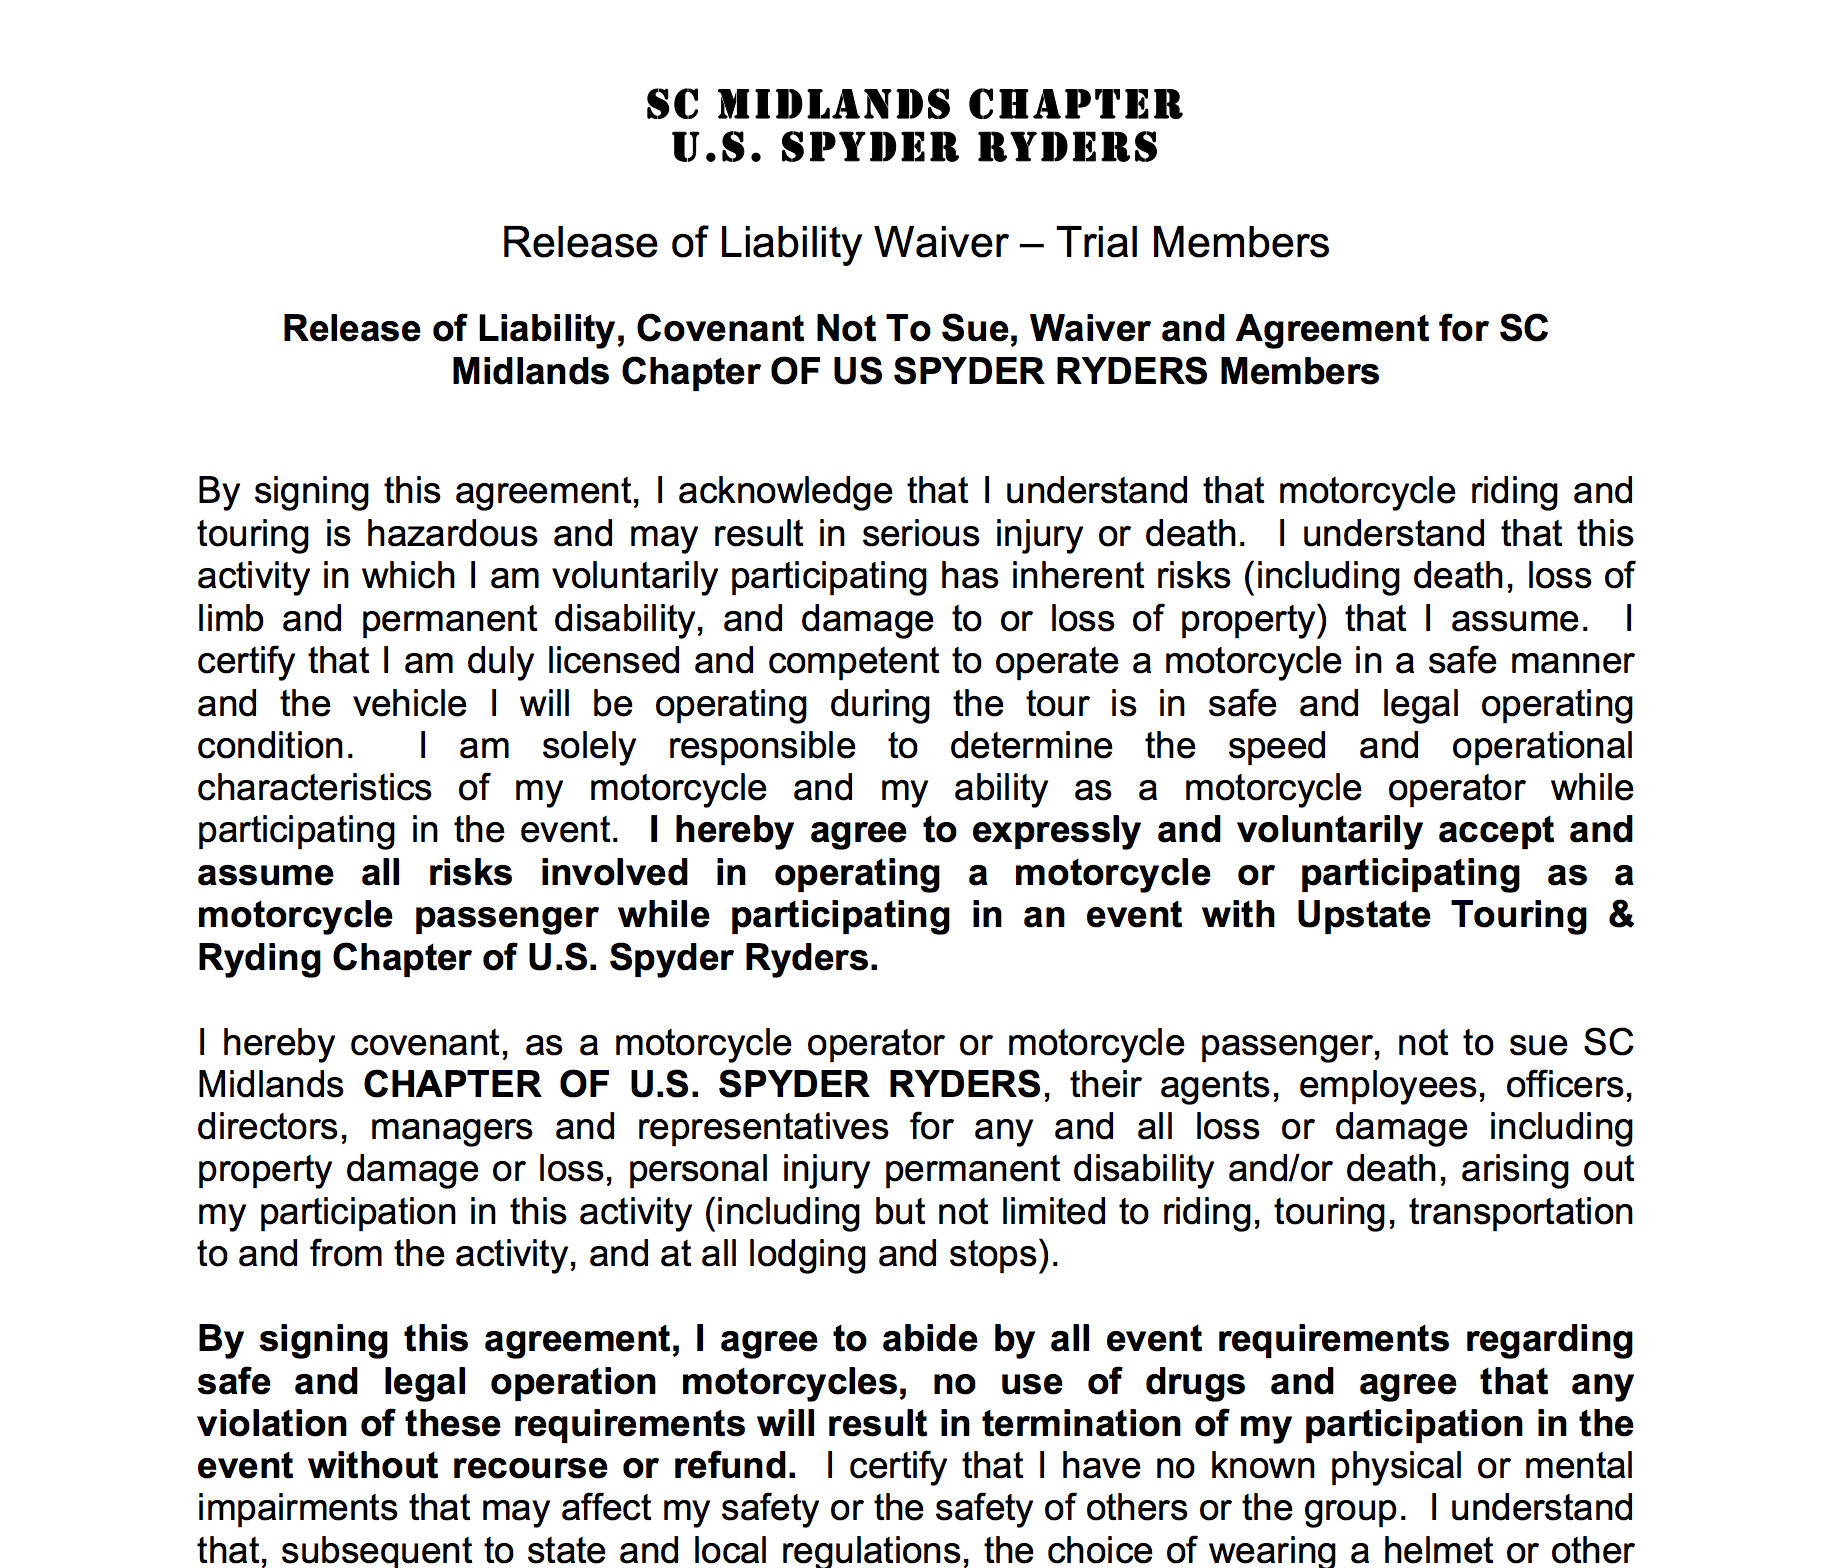 South Carolina Midlands Chapter Liability Waiver - TriaL Member